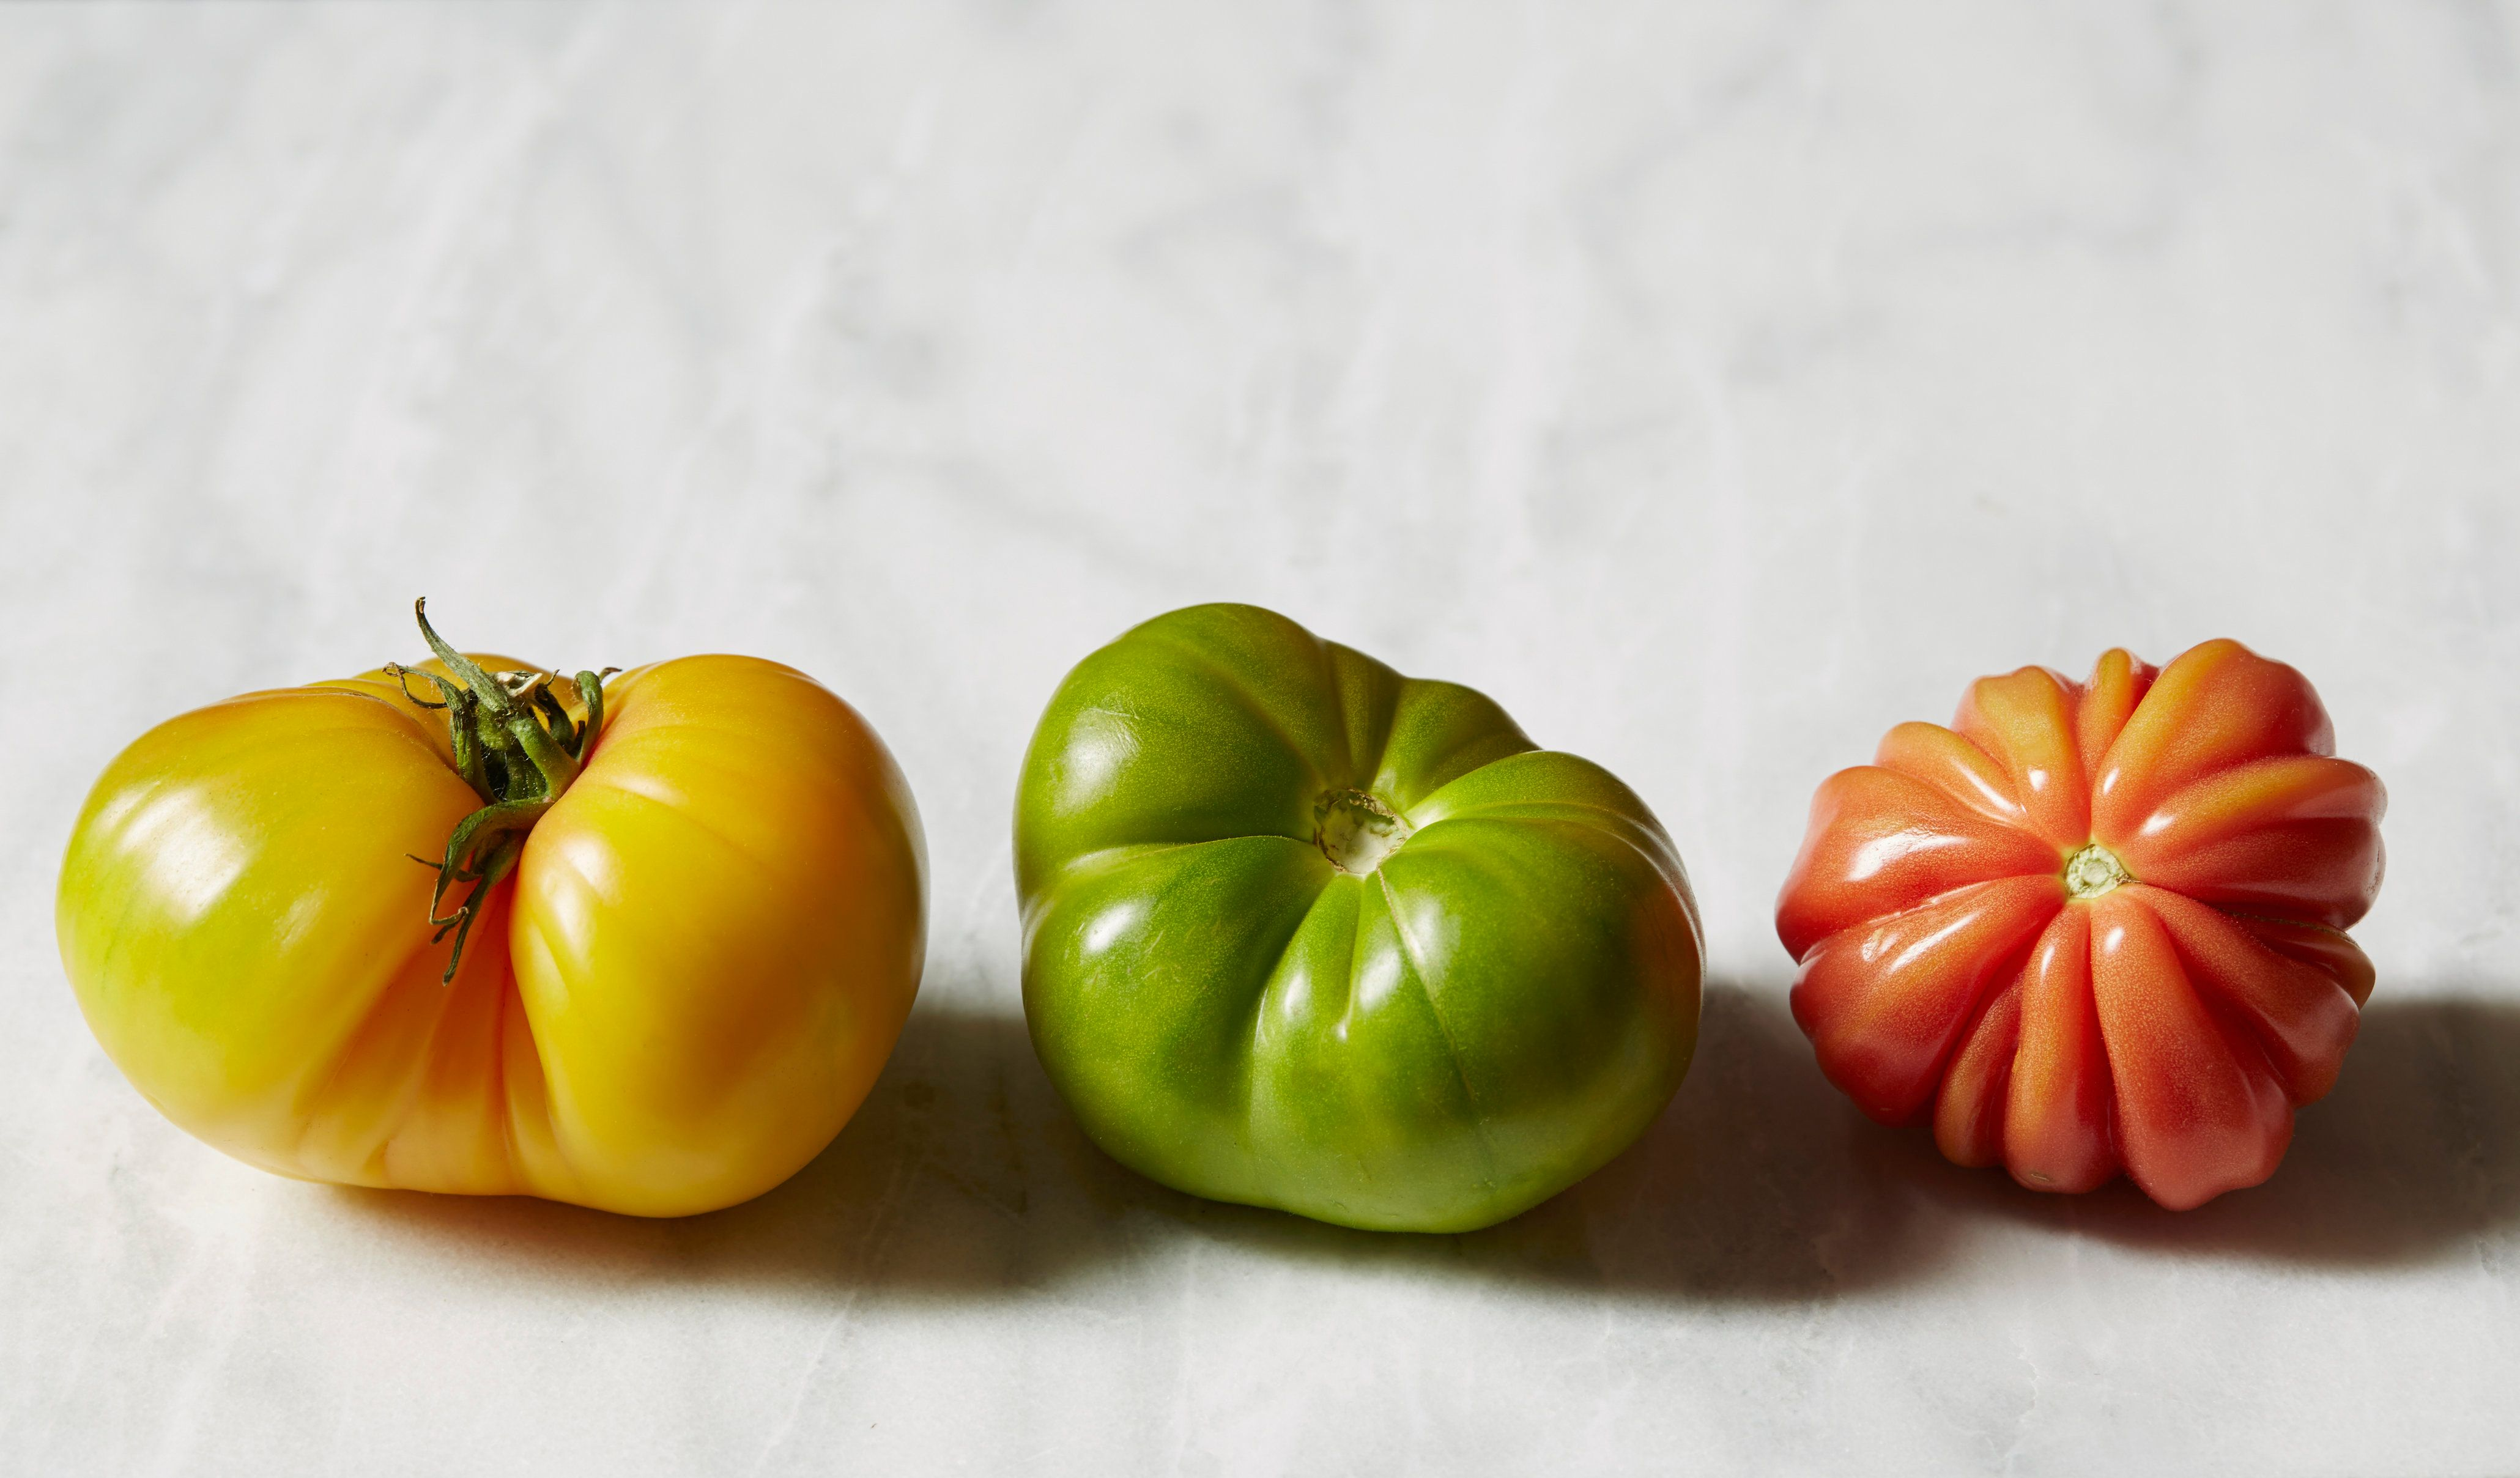 Green Tomatoes Aren't Always Just Unripe Versions Of Red